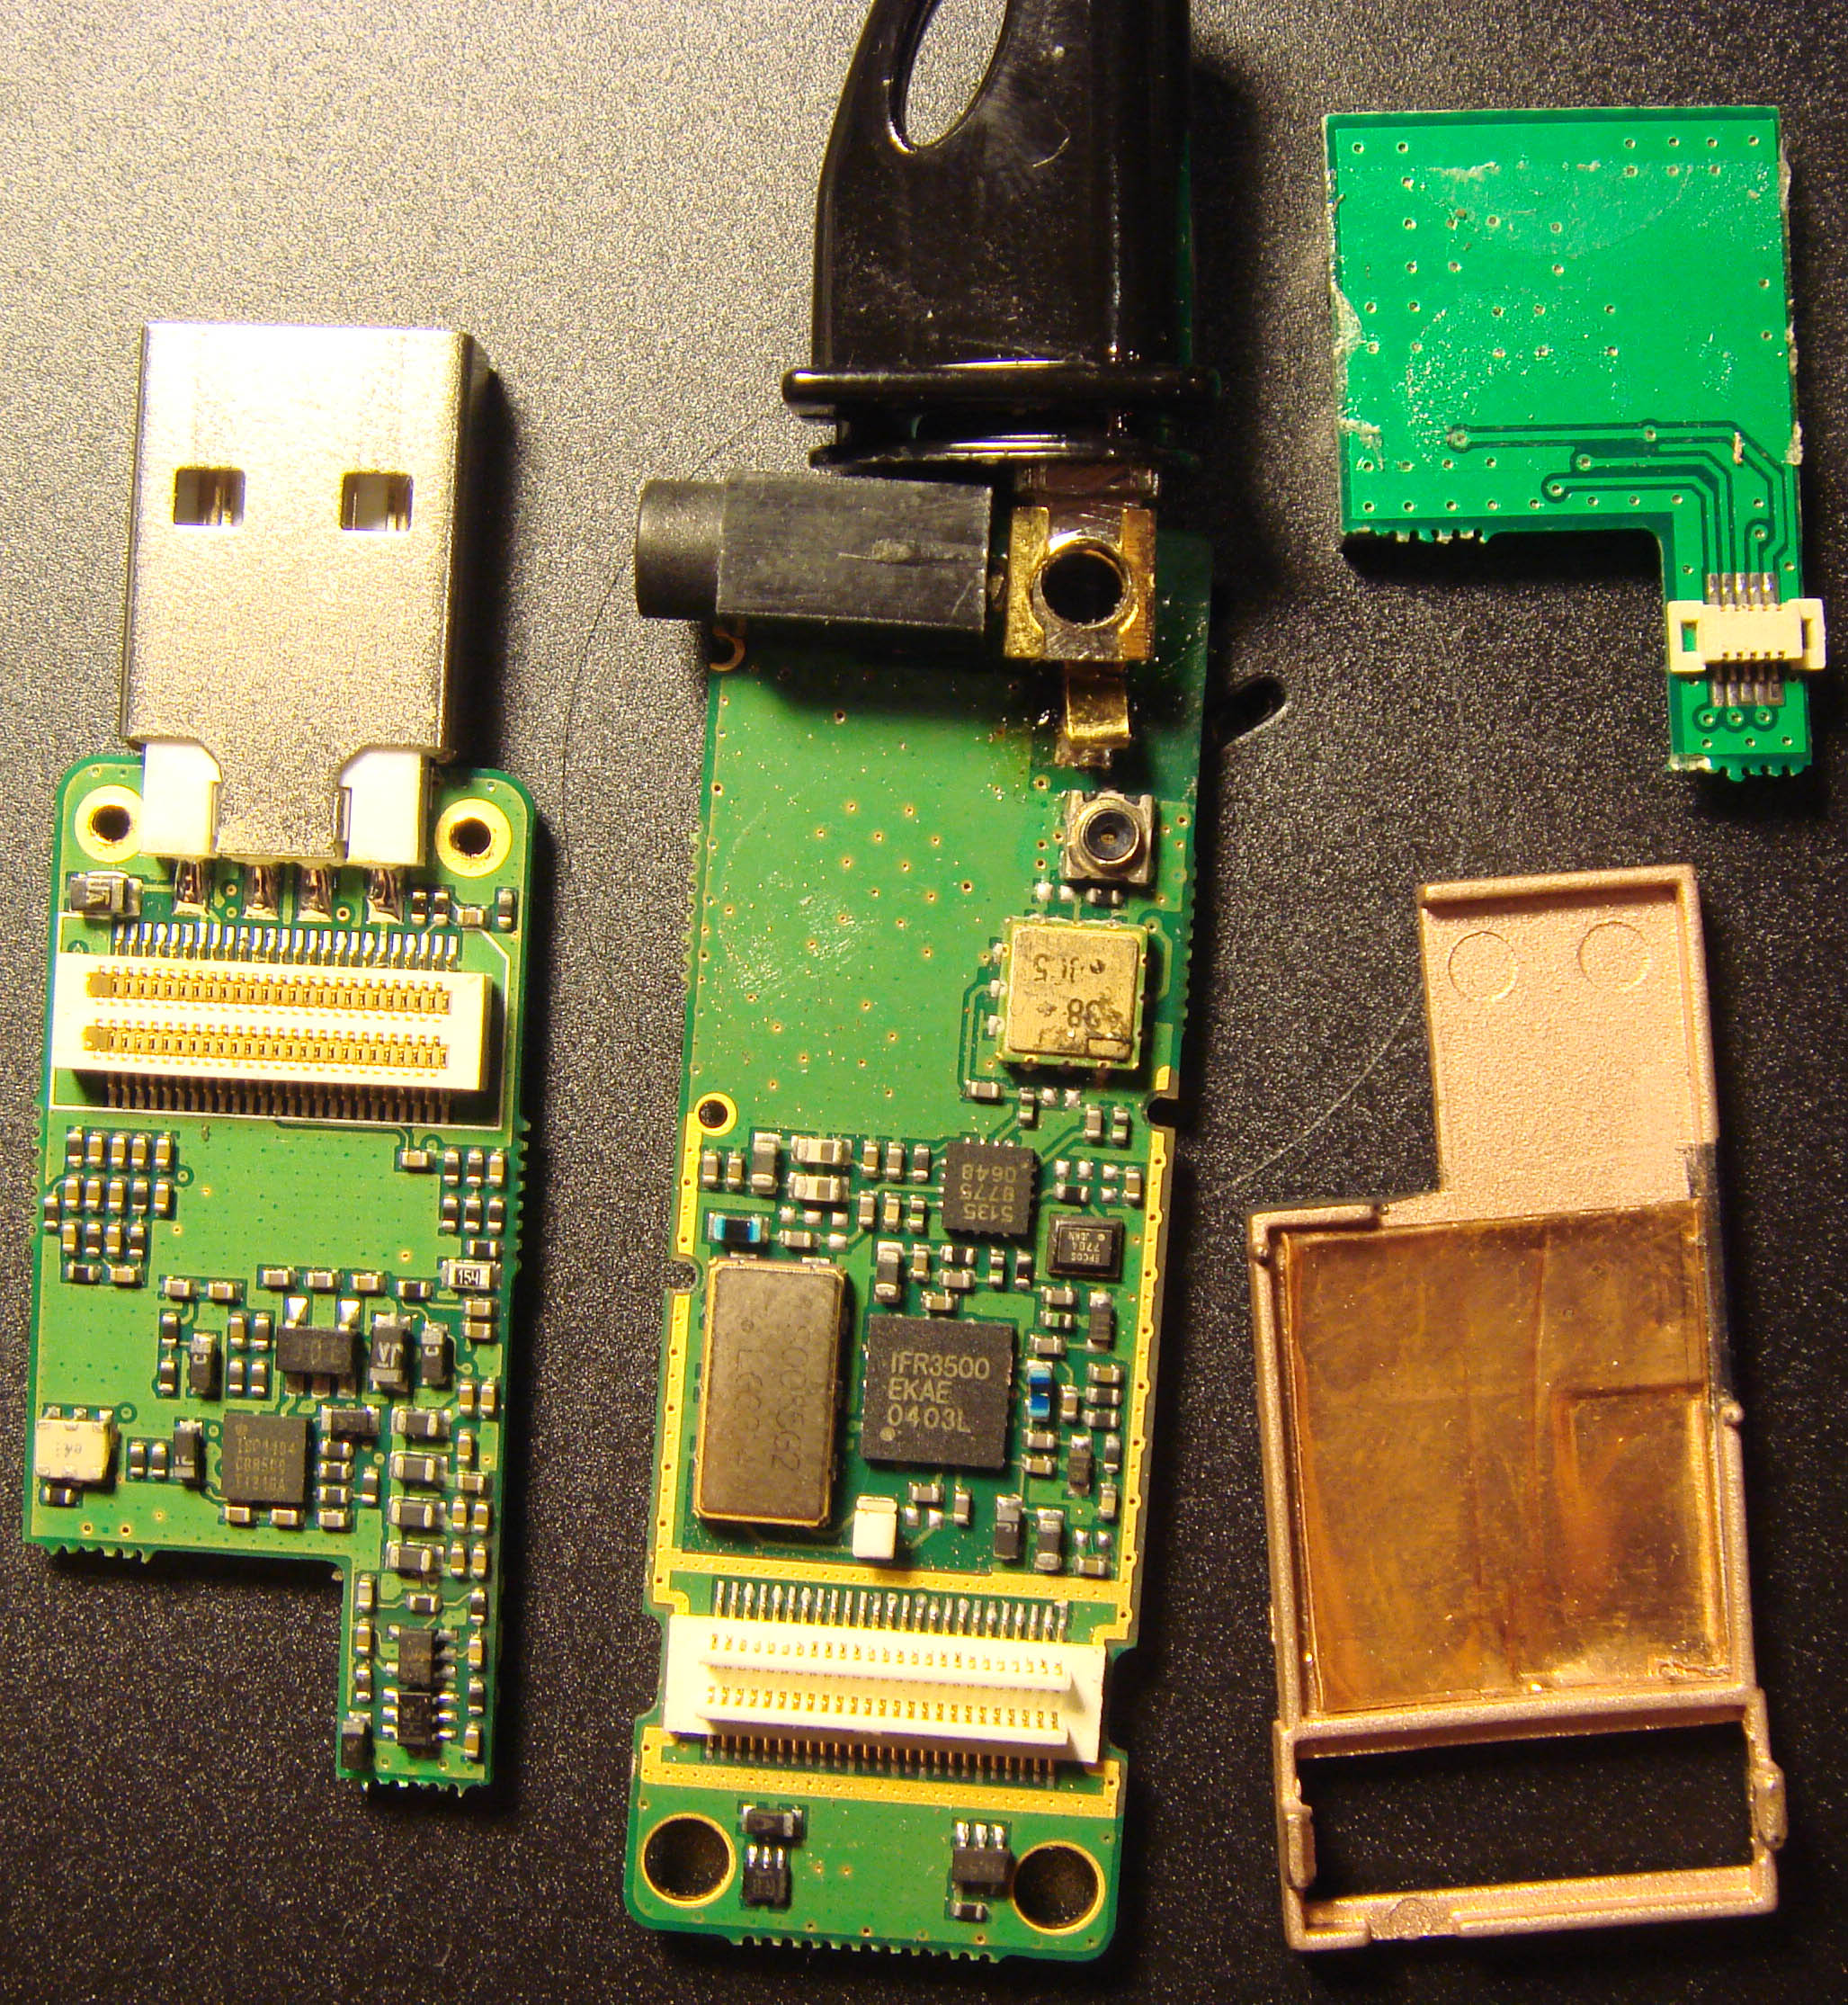 Bunnies Blog Mobile Phone Circuit Board Okey Pcb China The Ware Is An A Xunchi U3 Cdma 1x Rtt Wireless Data Dongle I Paid 250 Quai For This In Lightly Negotiated And Guess Did Okay Because